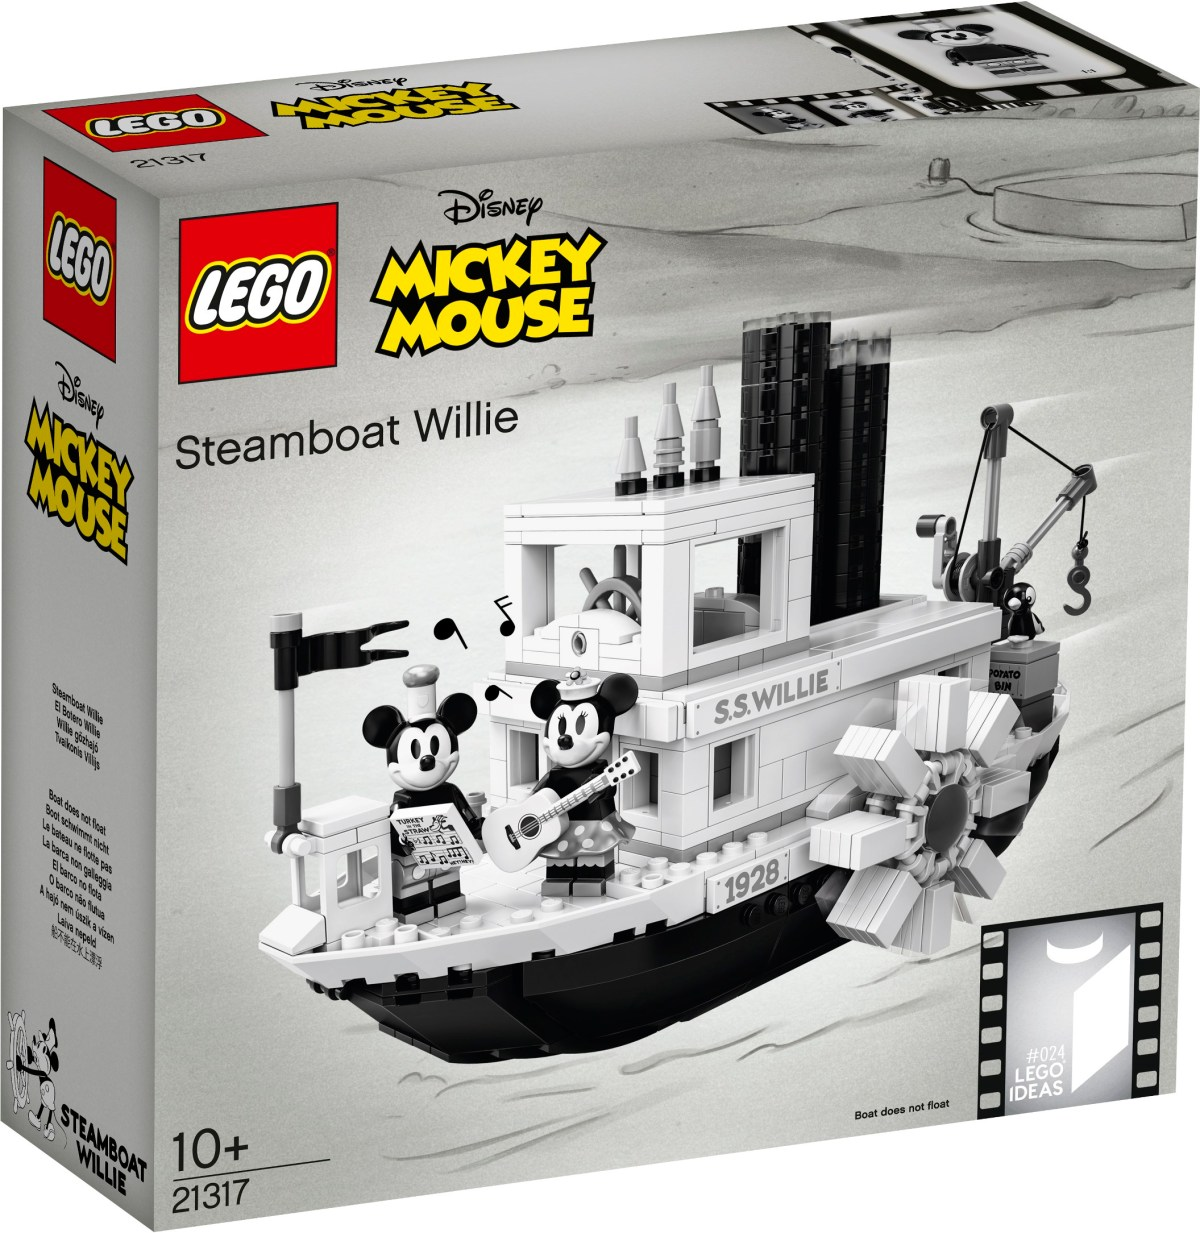 LEGO Ideas Disney Mickey Mouse – Steamboat Willie Set (21317) Officially Revealed